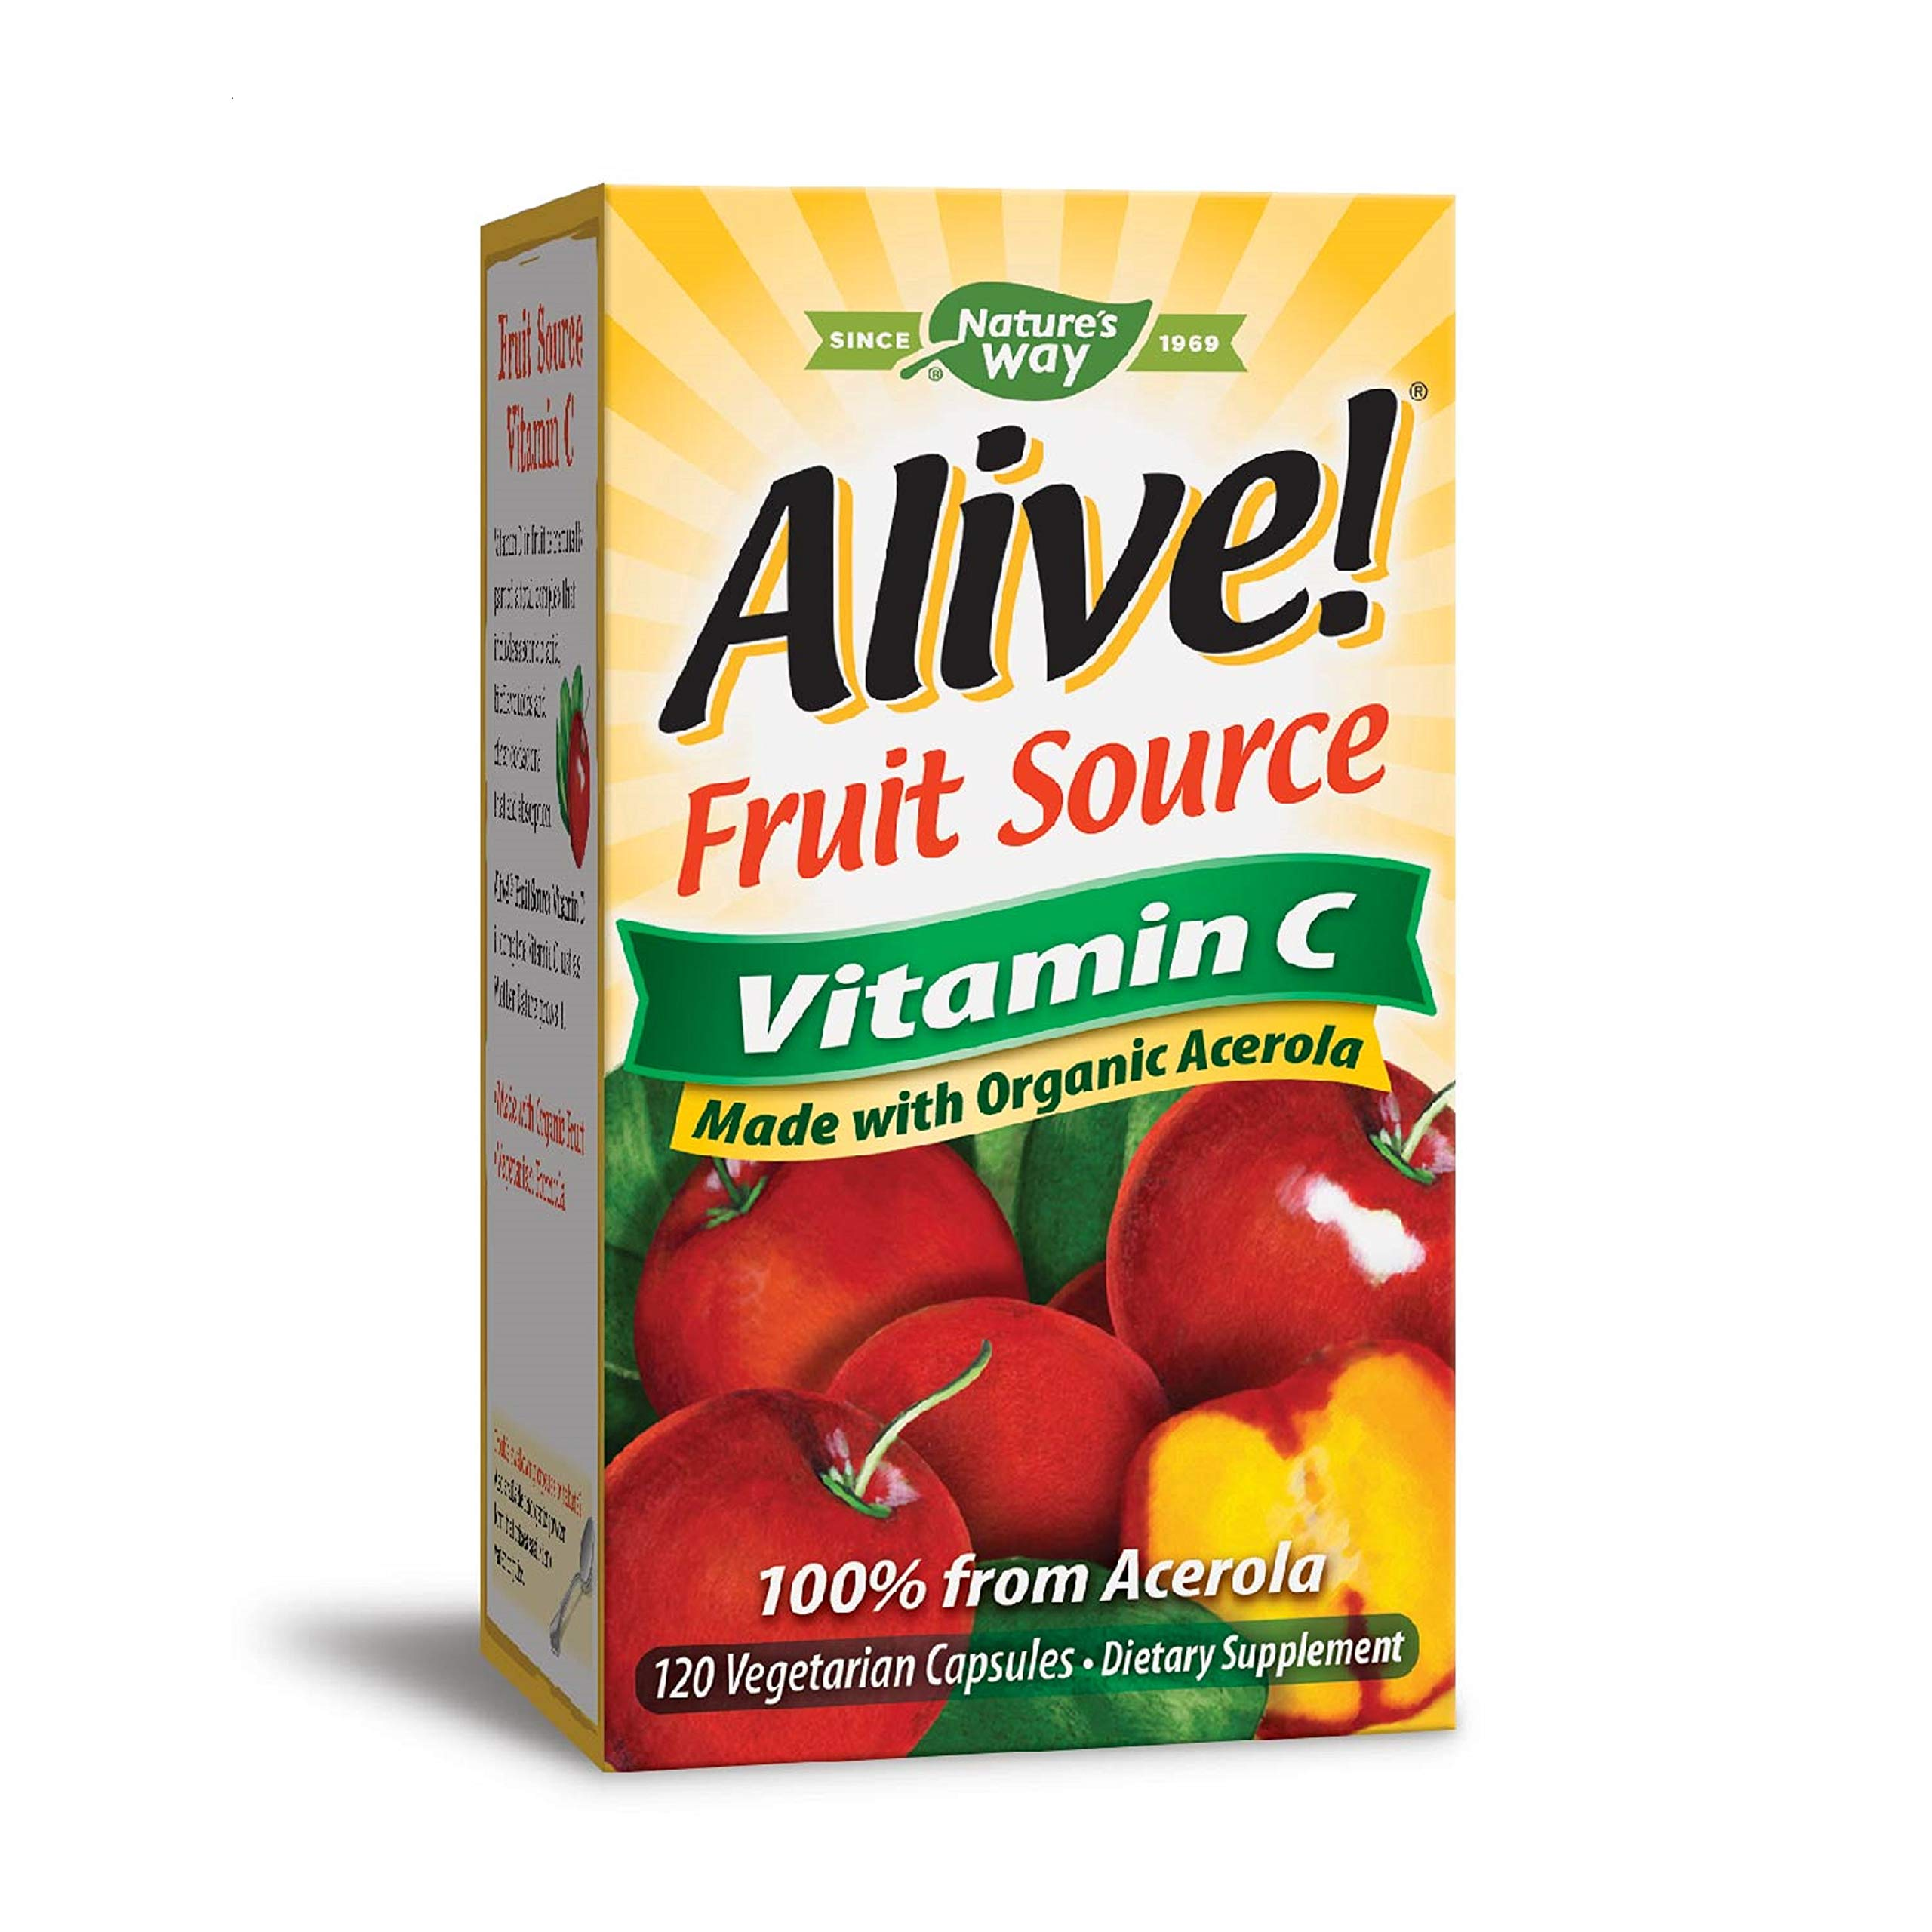 Nature's Way Alive!  Vitamin C Supplement, Made with Organic Fruit, 120 Vegetarian Capsules (Packaging May Vary)